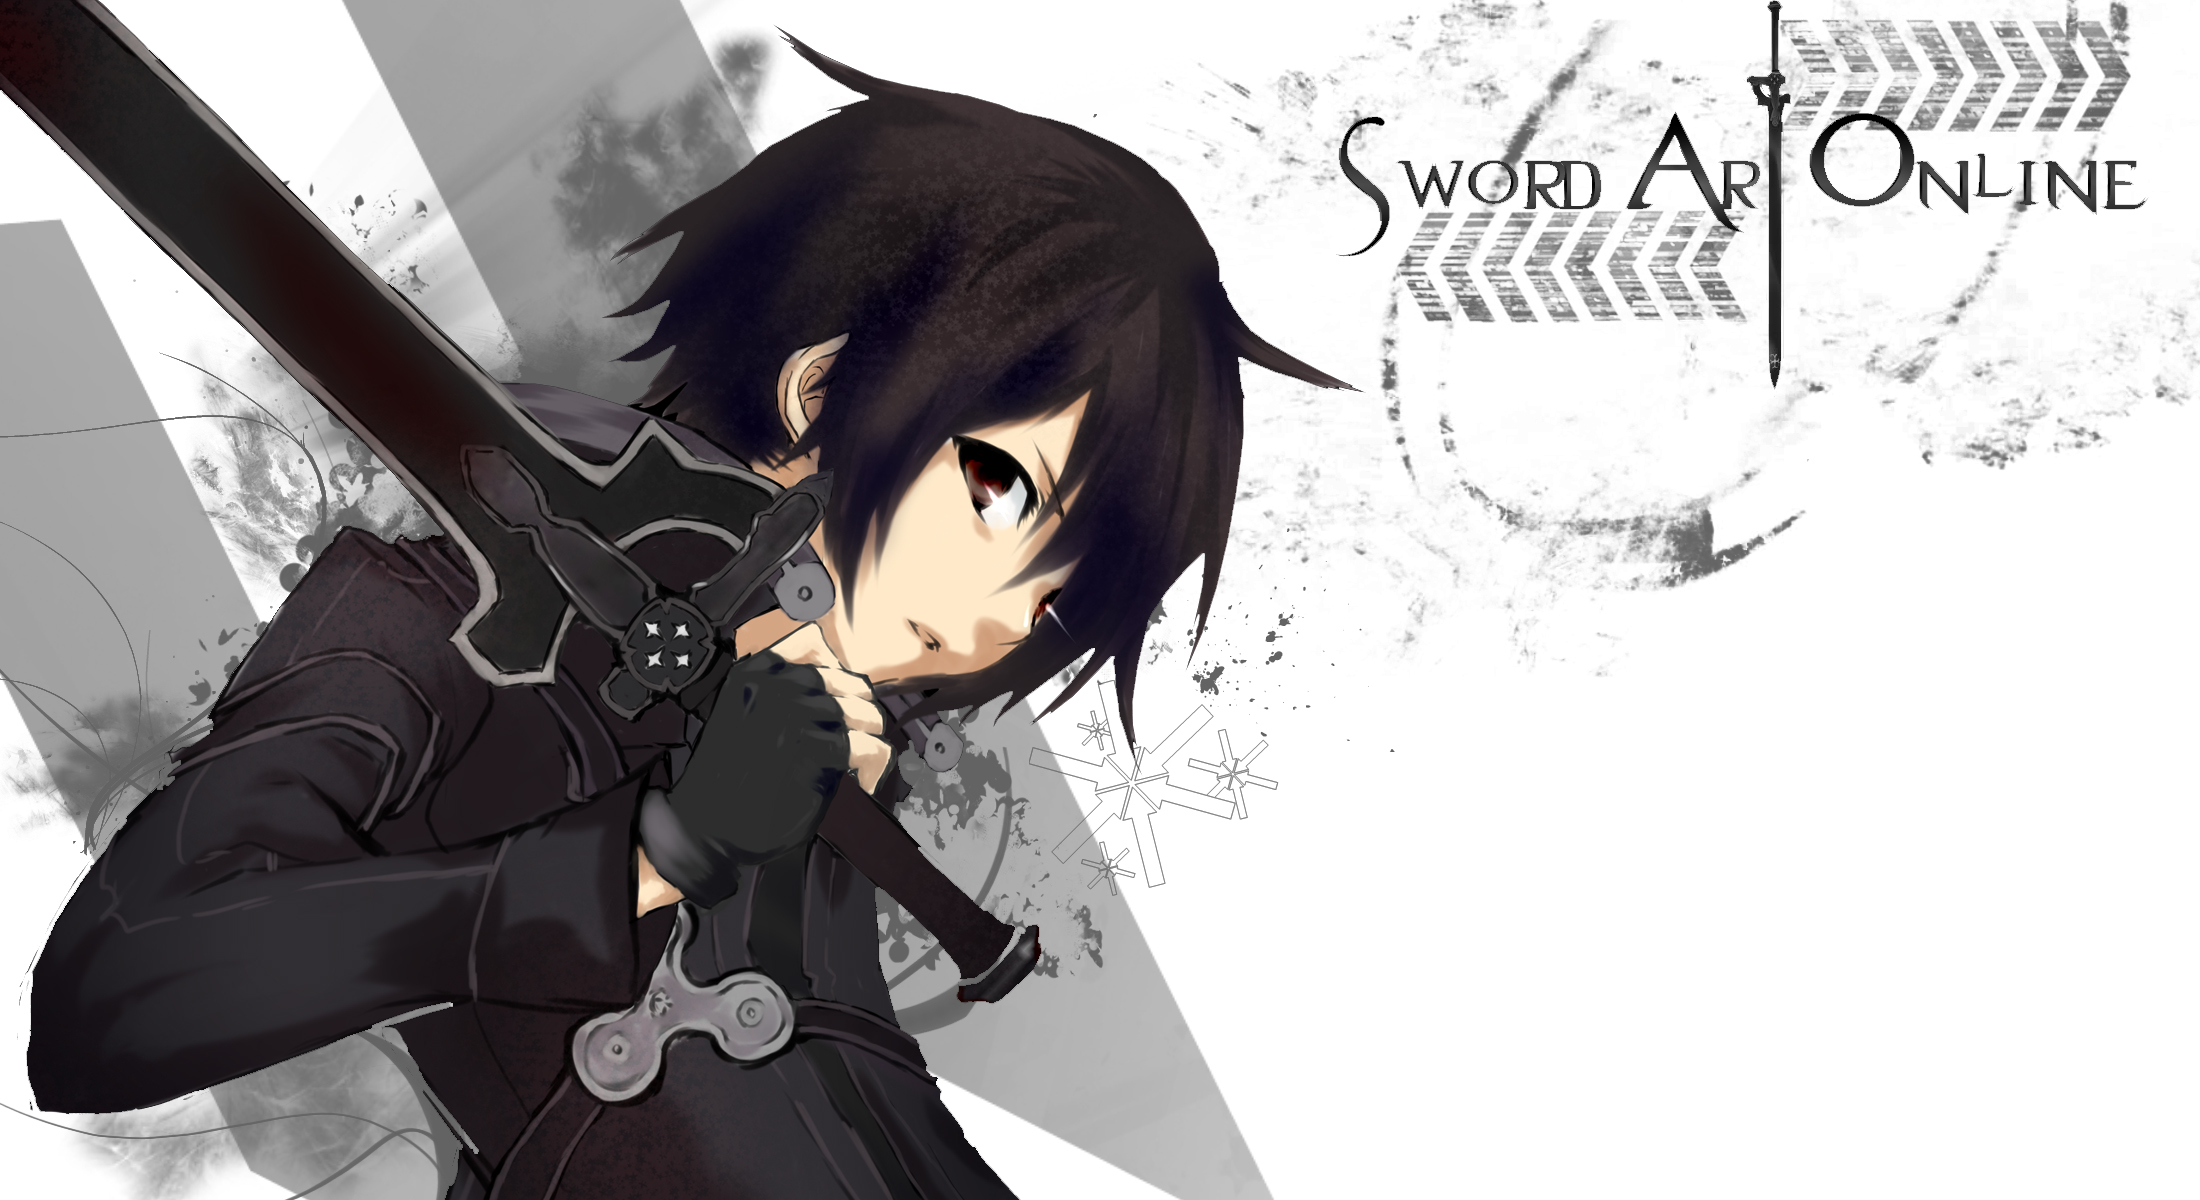 Sword Art Online wallpaper 64